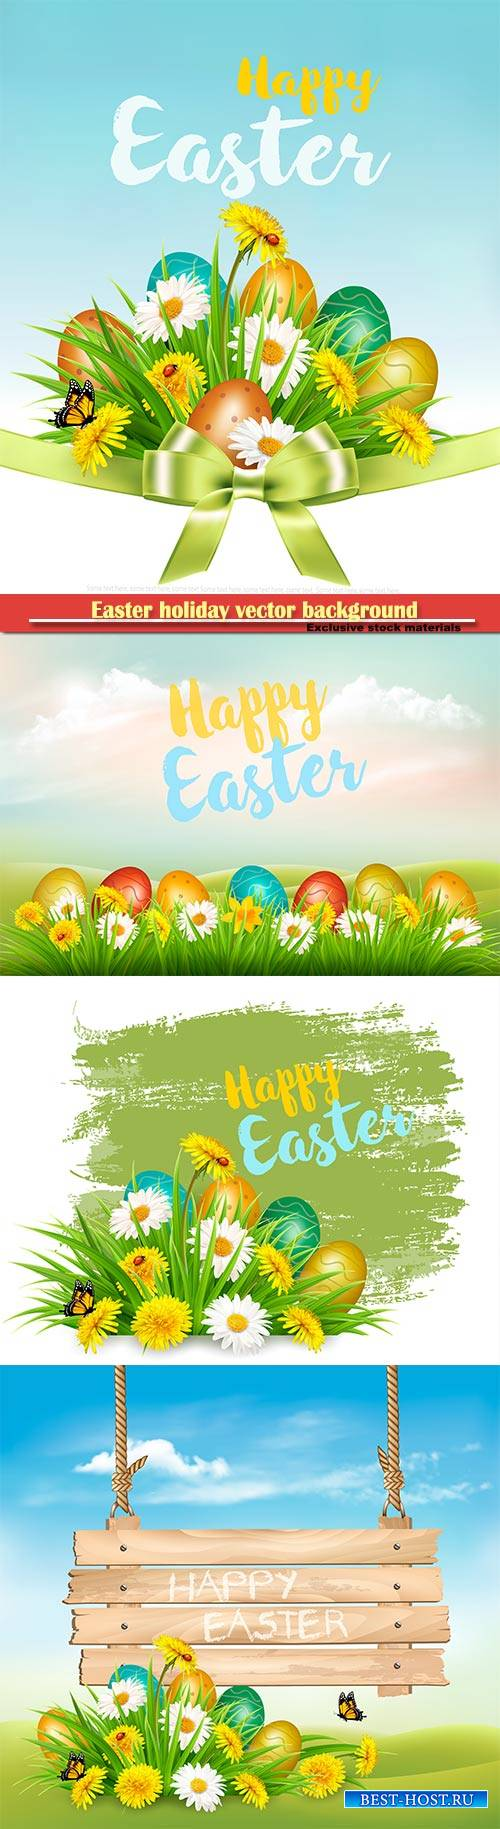 Easter holiday vector background with colofrul eggs in green grass